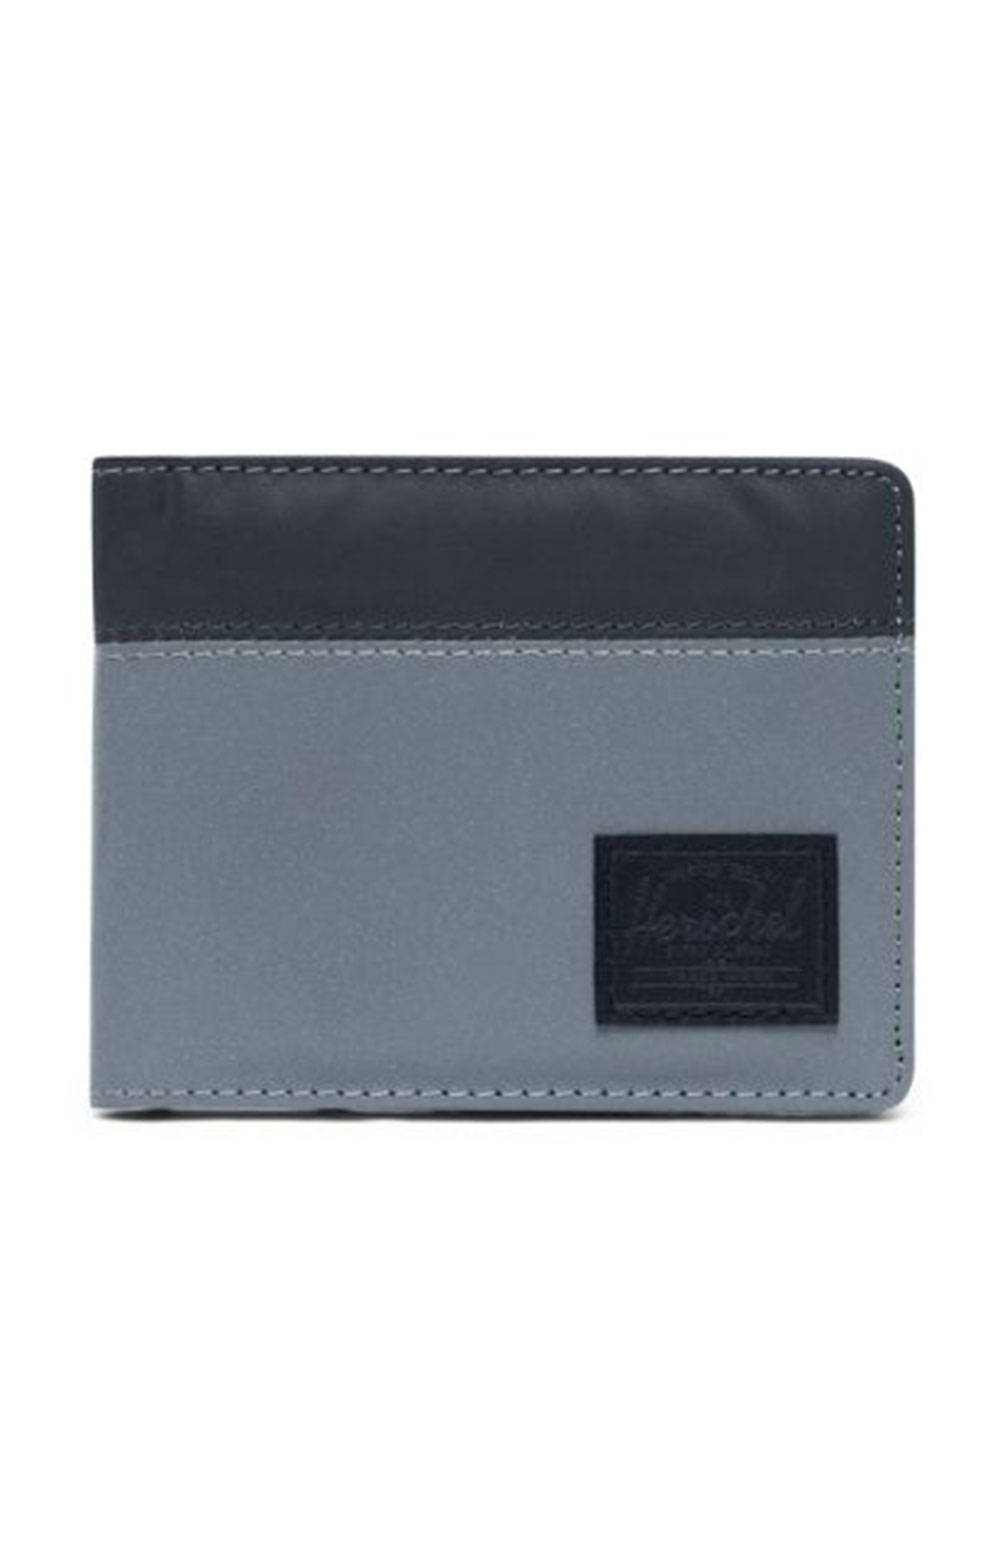 Roy Wallet - Silver Reflective